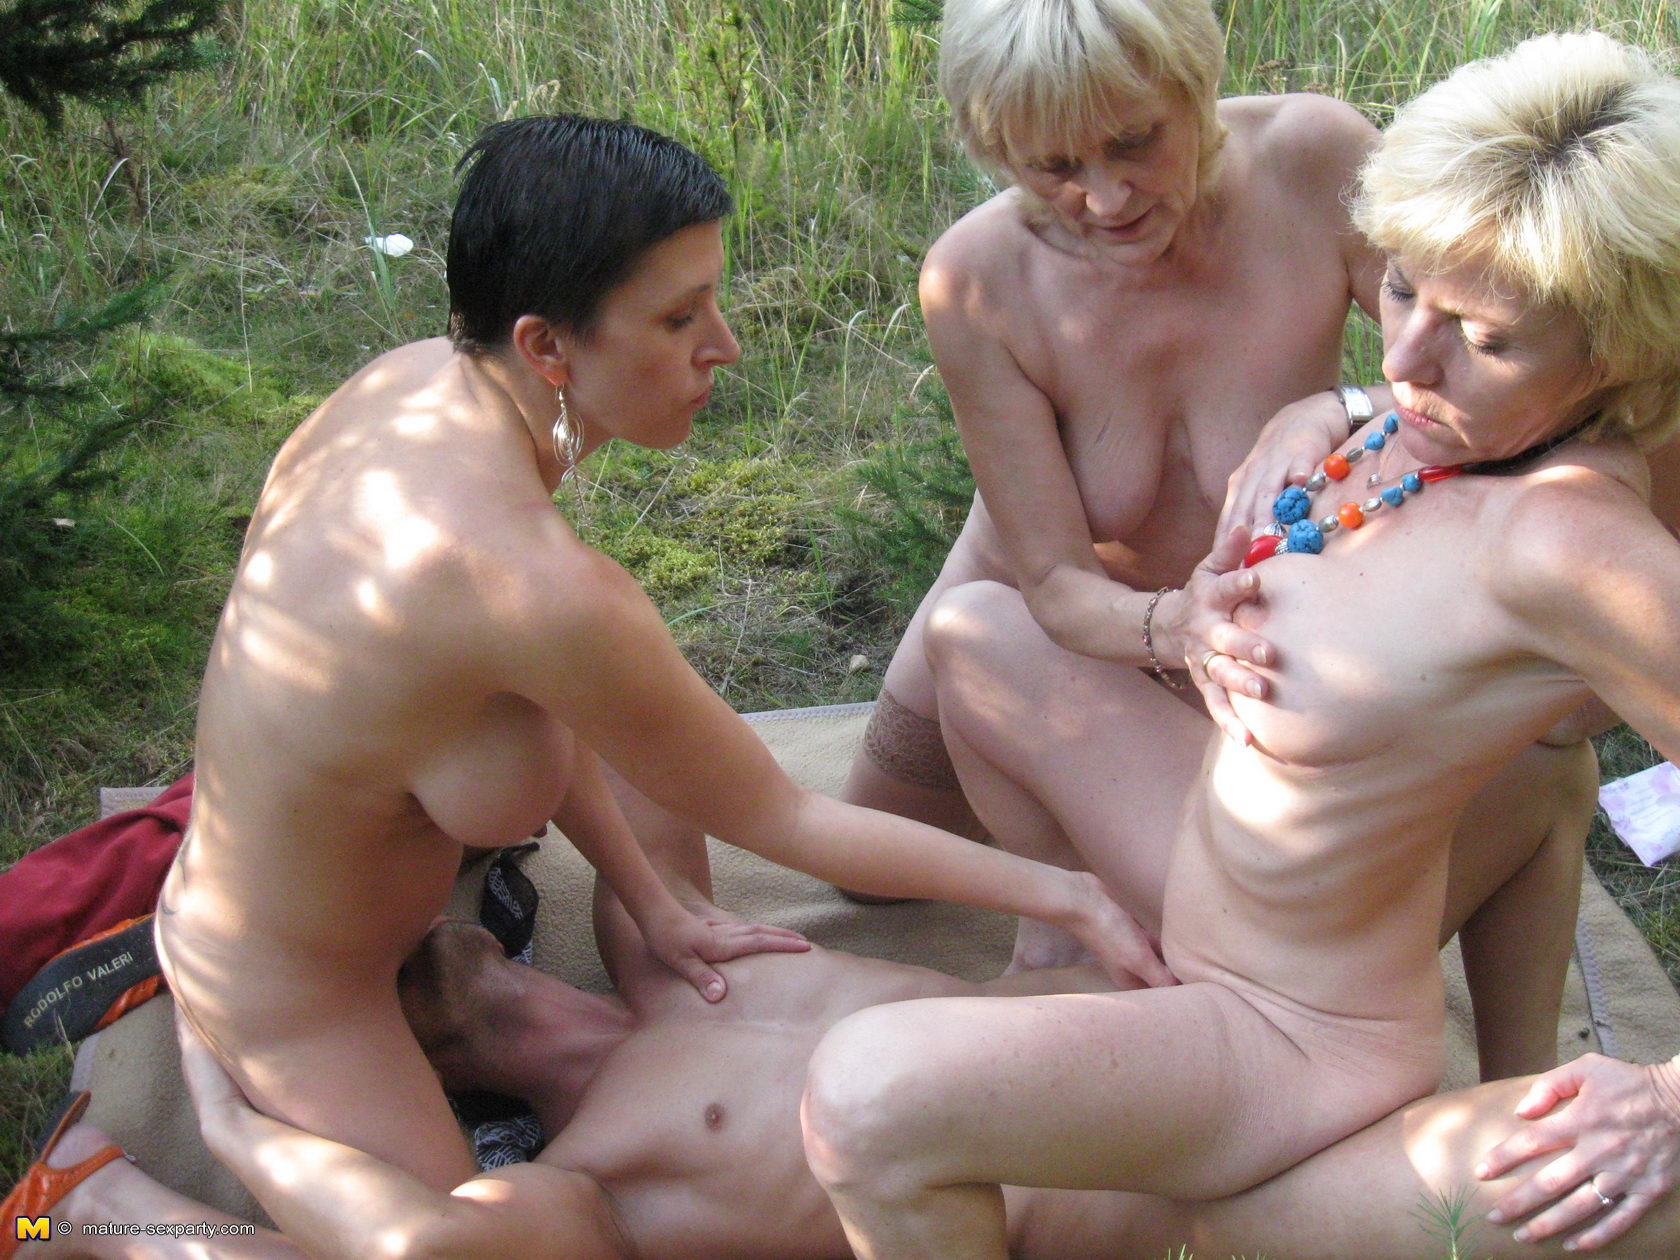 All clear, Outdoor group sex party opinion